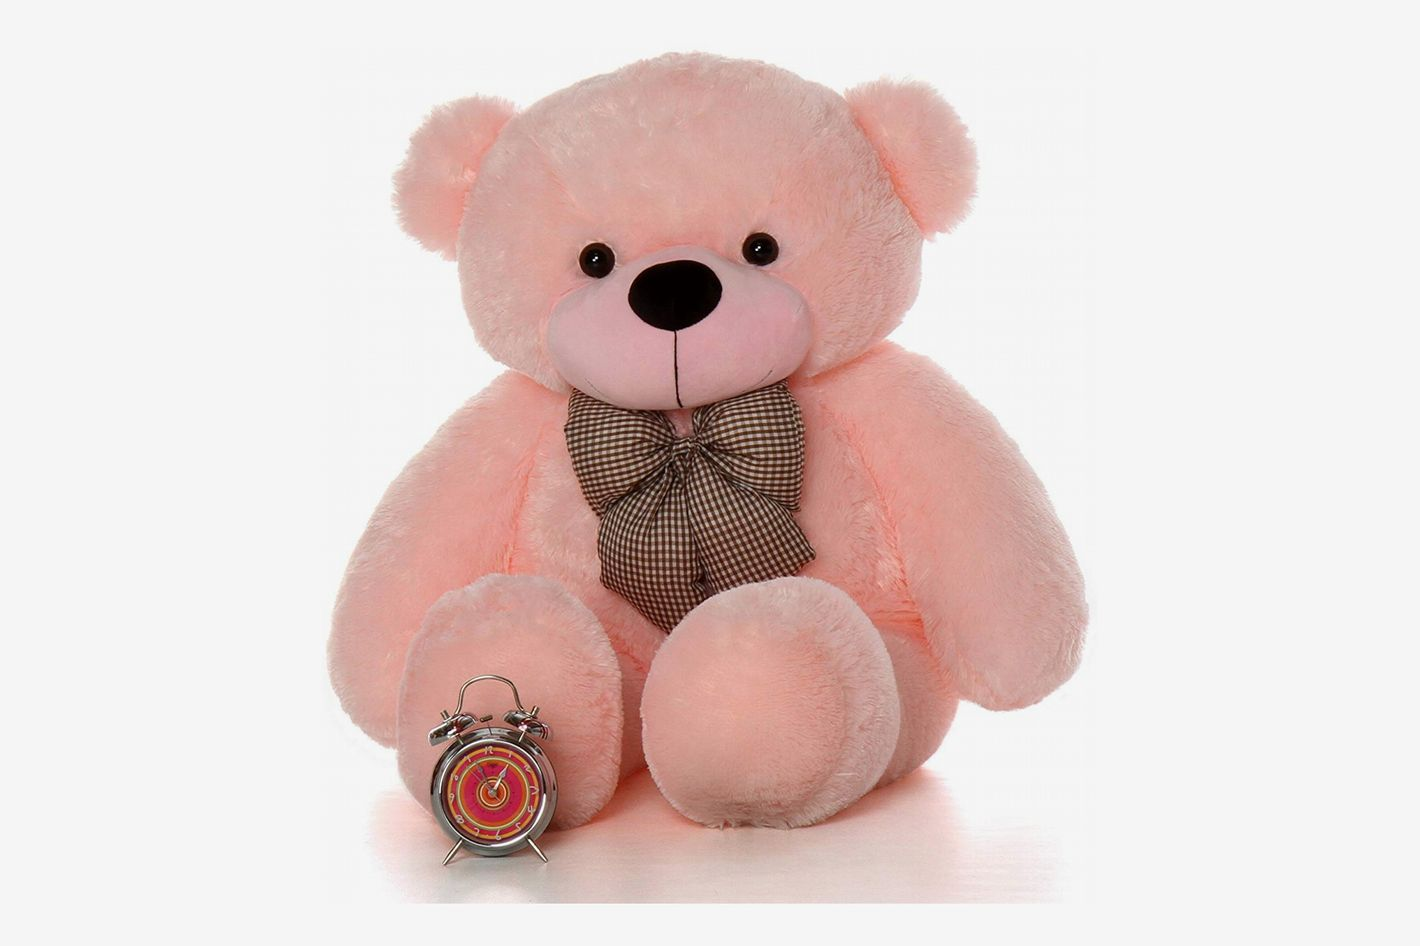 Giant Teddy - Plush Teddy Bear, 4 Feet Tall, Pink